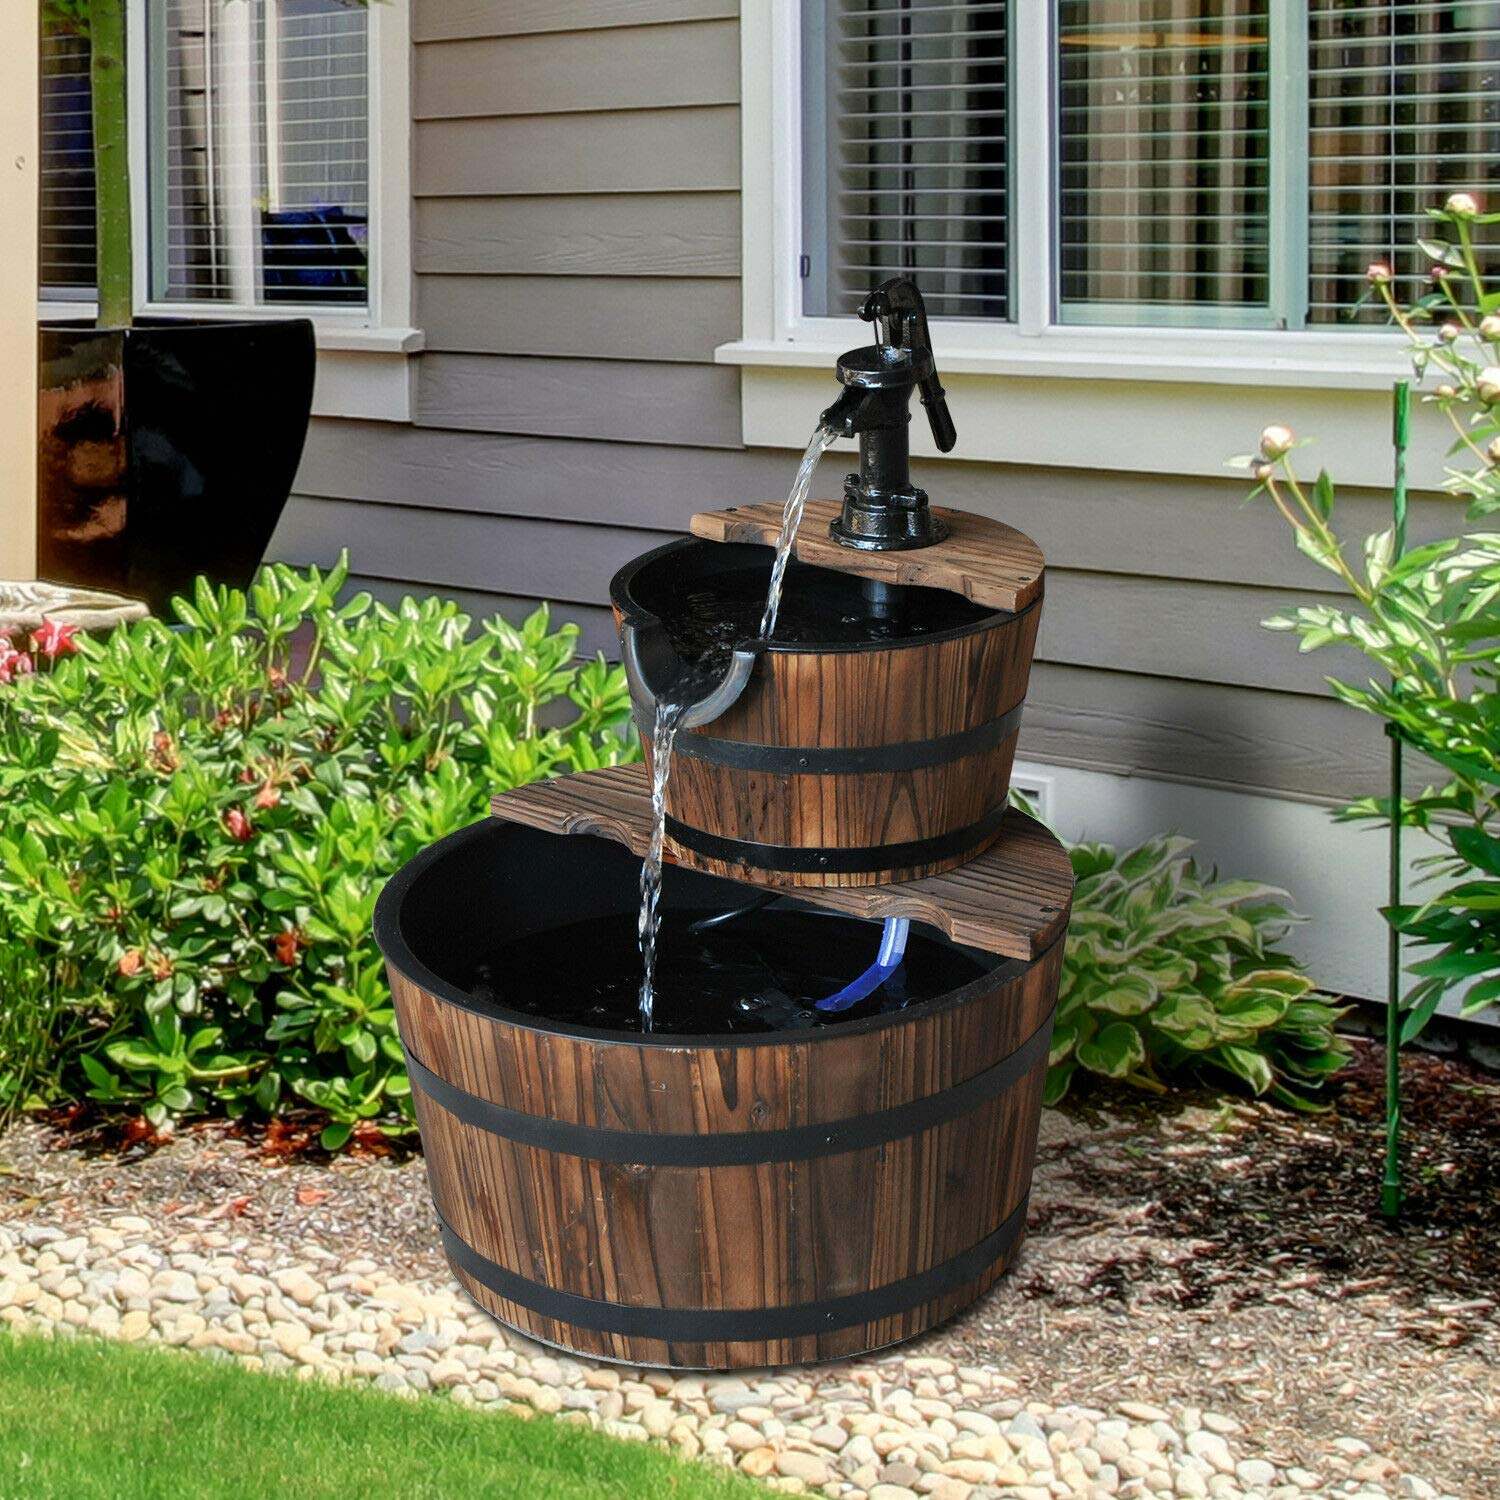 n-bright shop 2 Tier Fountain Pump Barrel Rustic Wood Water Fountain with Pump Traditional Garden Outdoor Decor by n-bright shop